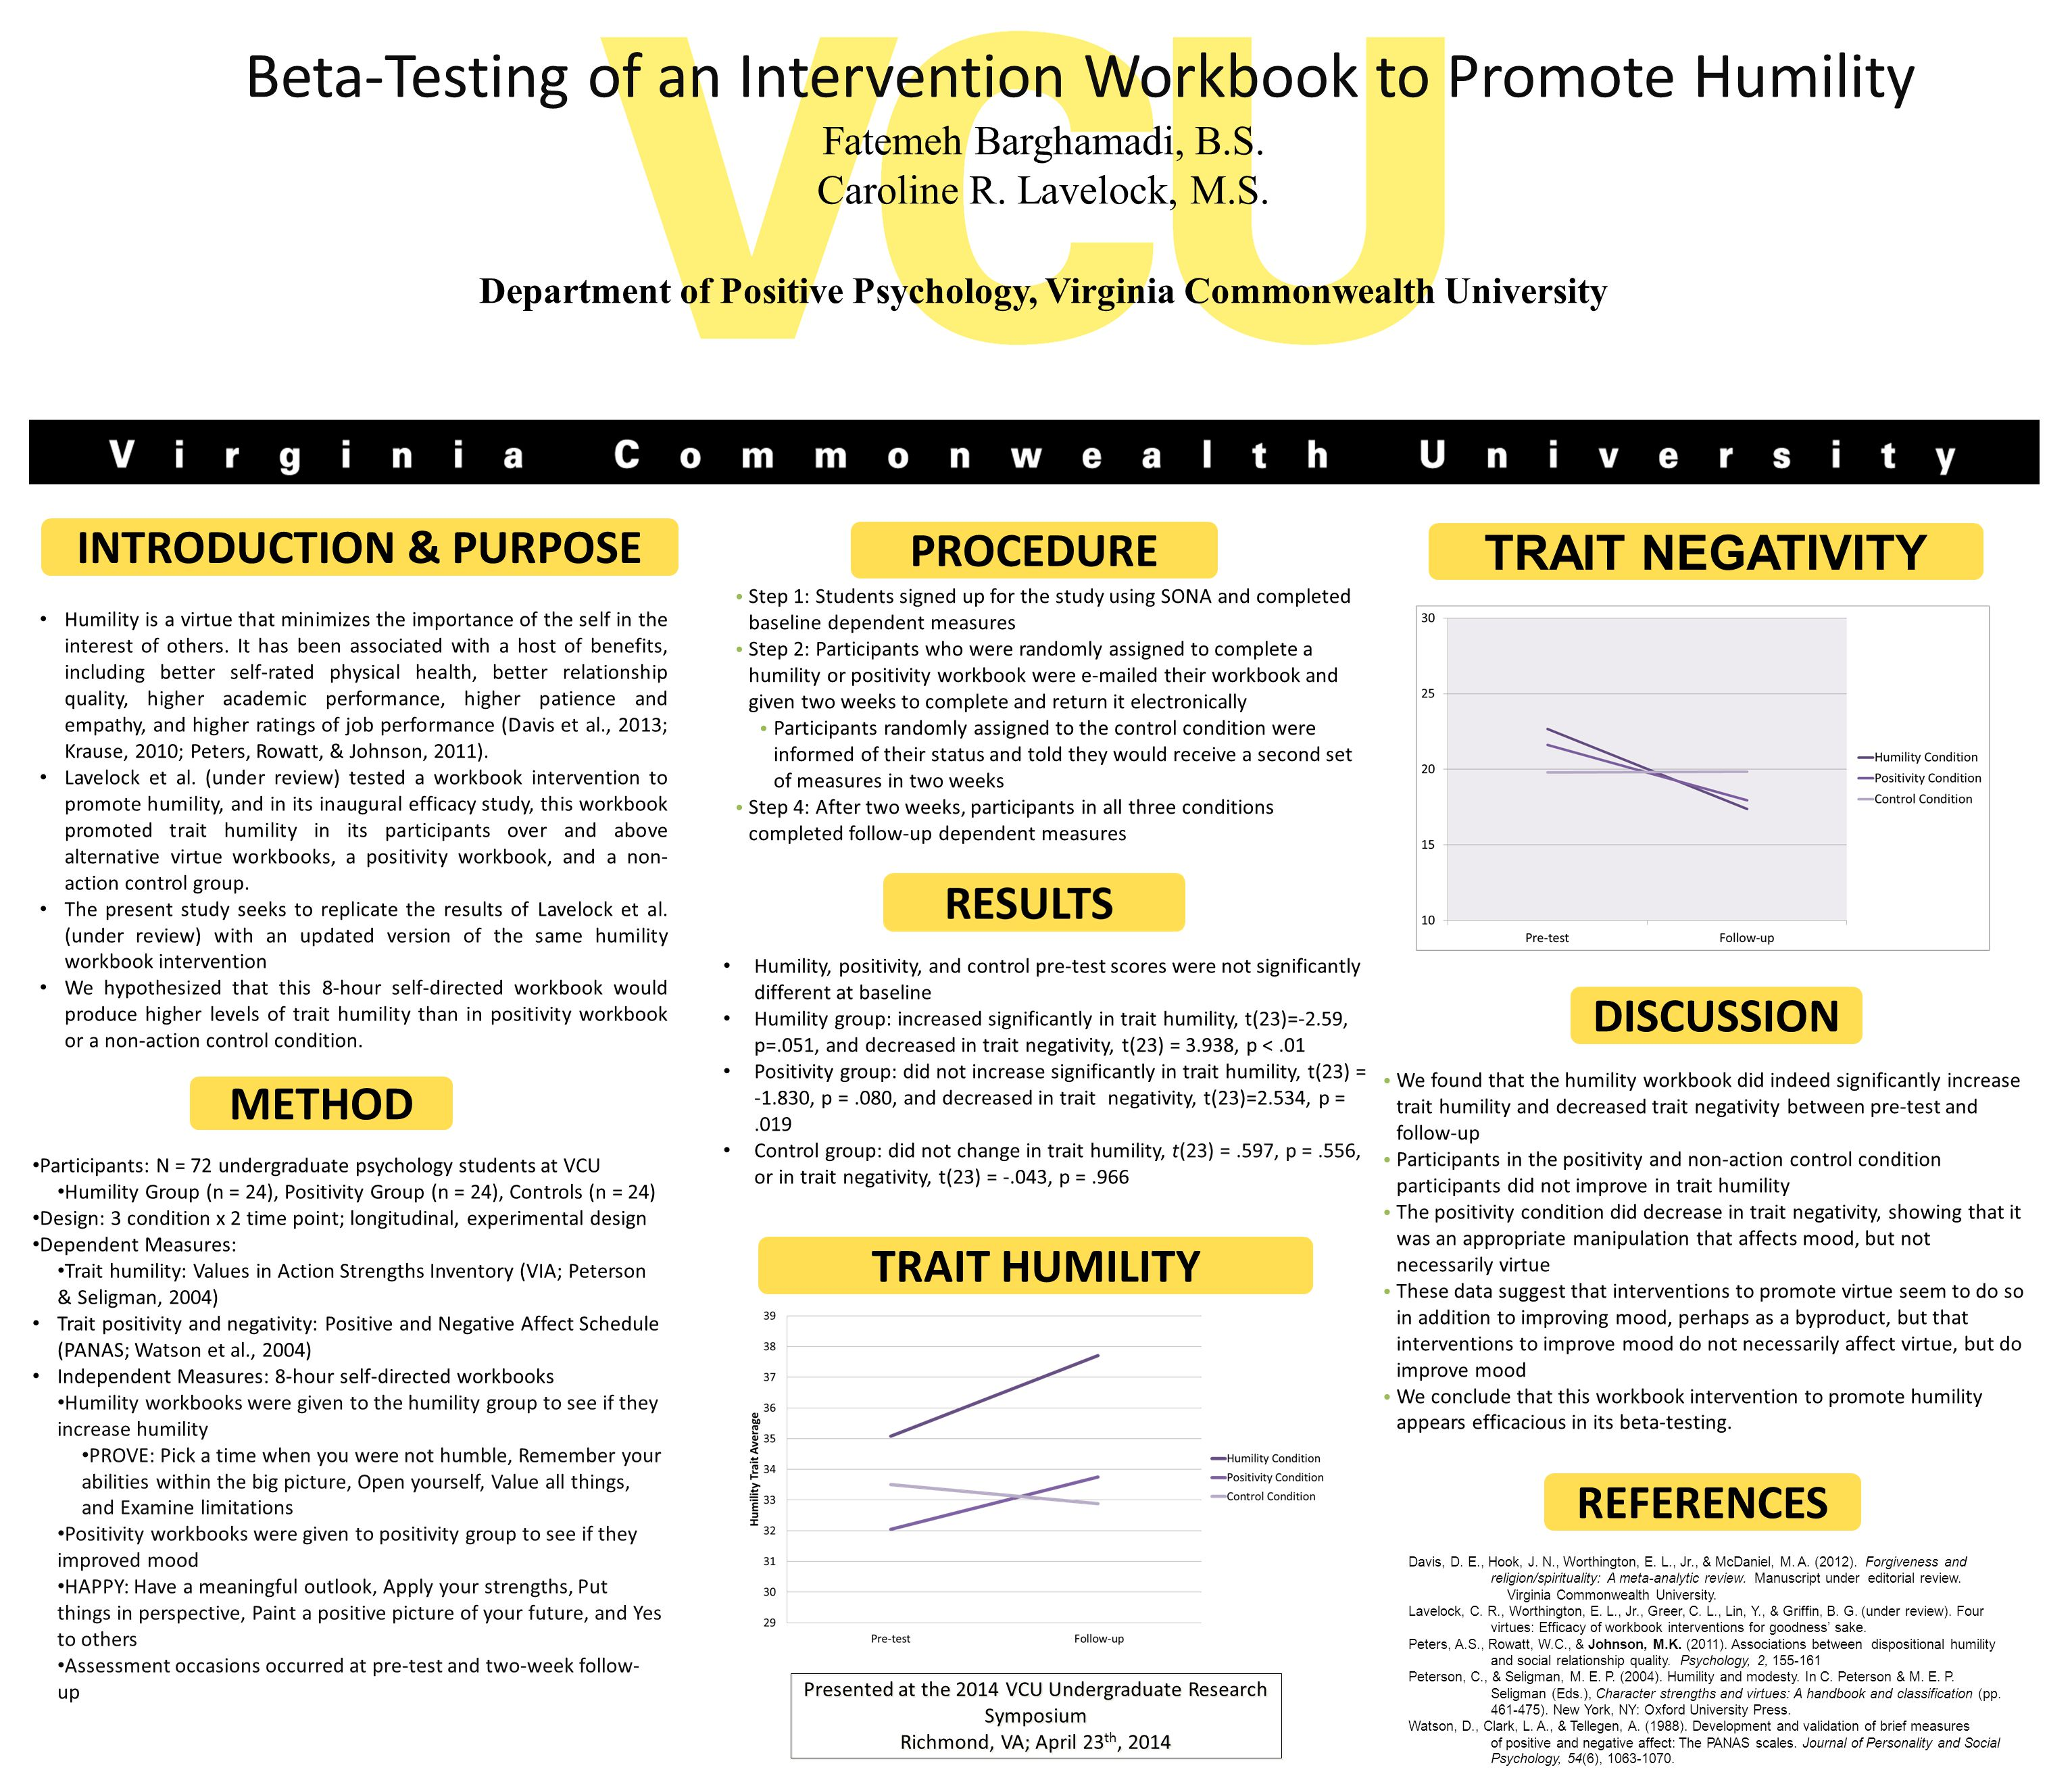 We found that the humility workbook did indeed significantly increase trait humility and decreased trait negativity between pre-test and follow-up Participants in the positivity and non-action control condition participants did not improve in trait humility The positivity condition did decrease in trait negativity, showing that it was an appropriate manipulation that affects mood, but not necessarily virtue These data suggest that interventions to promote virtue seem to do so in addition to improving mood, perhaps as a byproduct, but that interventions to improve mood do not necessarily affect virtue, but do improve mood We conclude that this workbook intervention to promote humility appears efficacious in its beta-testing.